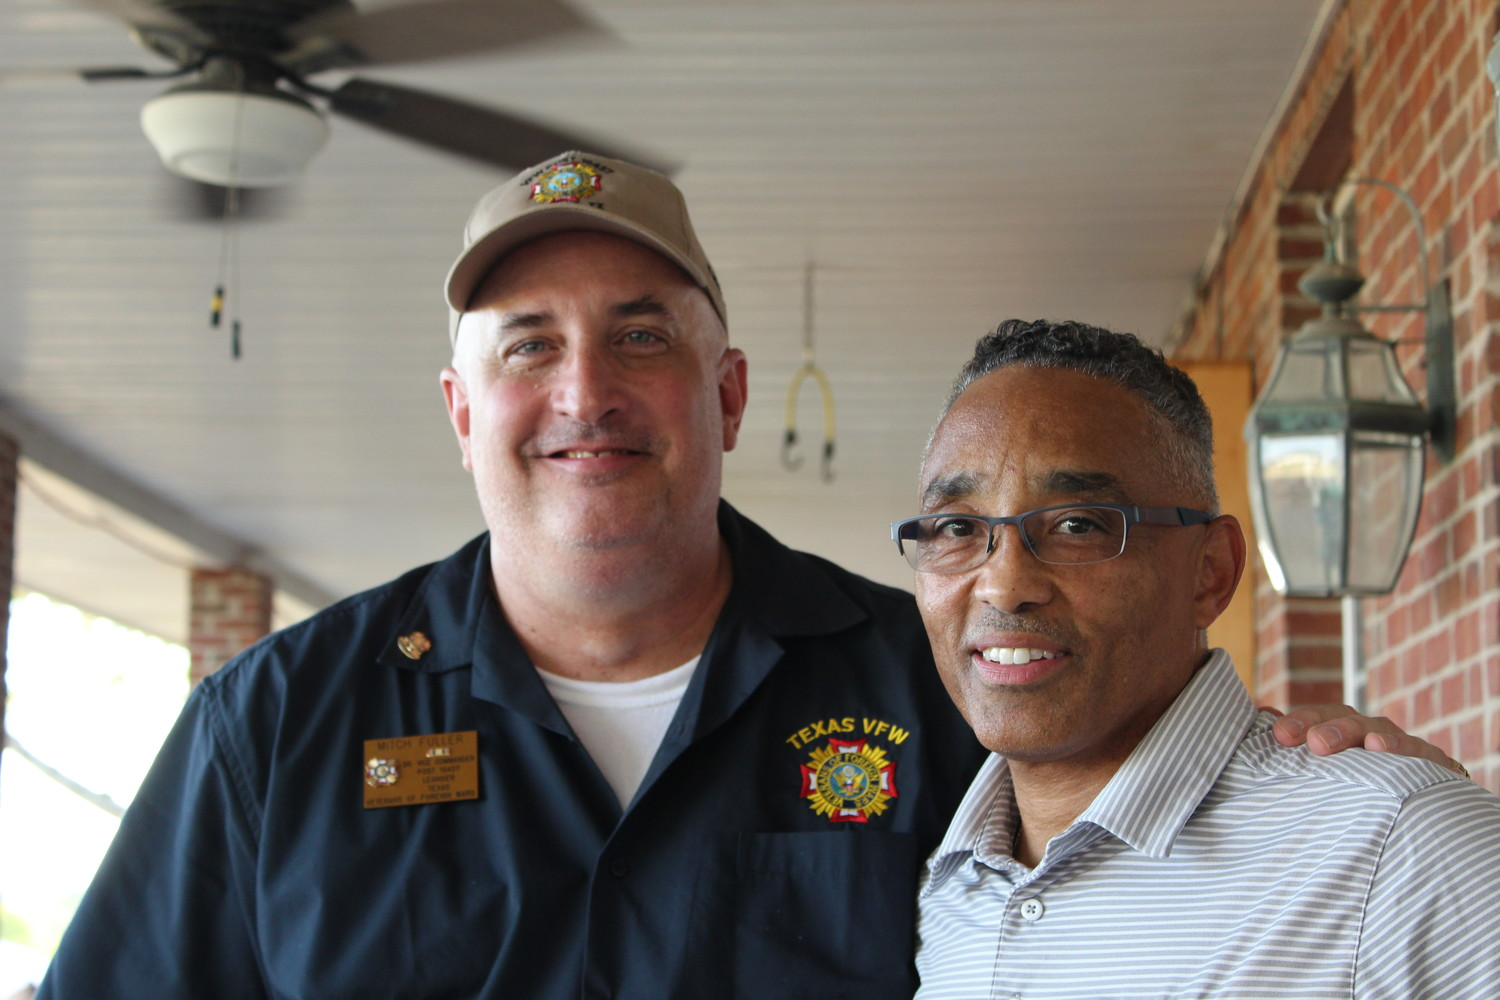 Retired Army Lt. Col Kevin Harris (right) stands with retired Capt. Mitch Fuller, Senior Vice Commander of Leander VFW Post 10427 at the post's steak dinner on July 20.